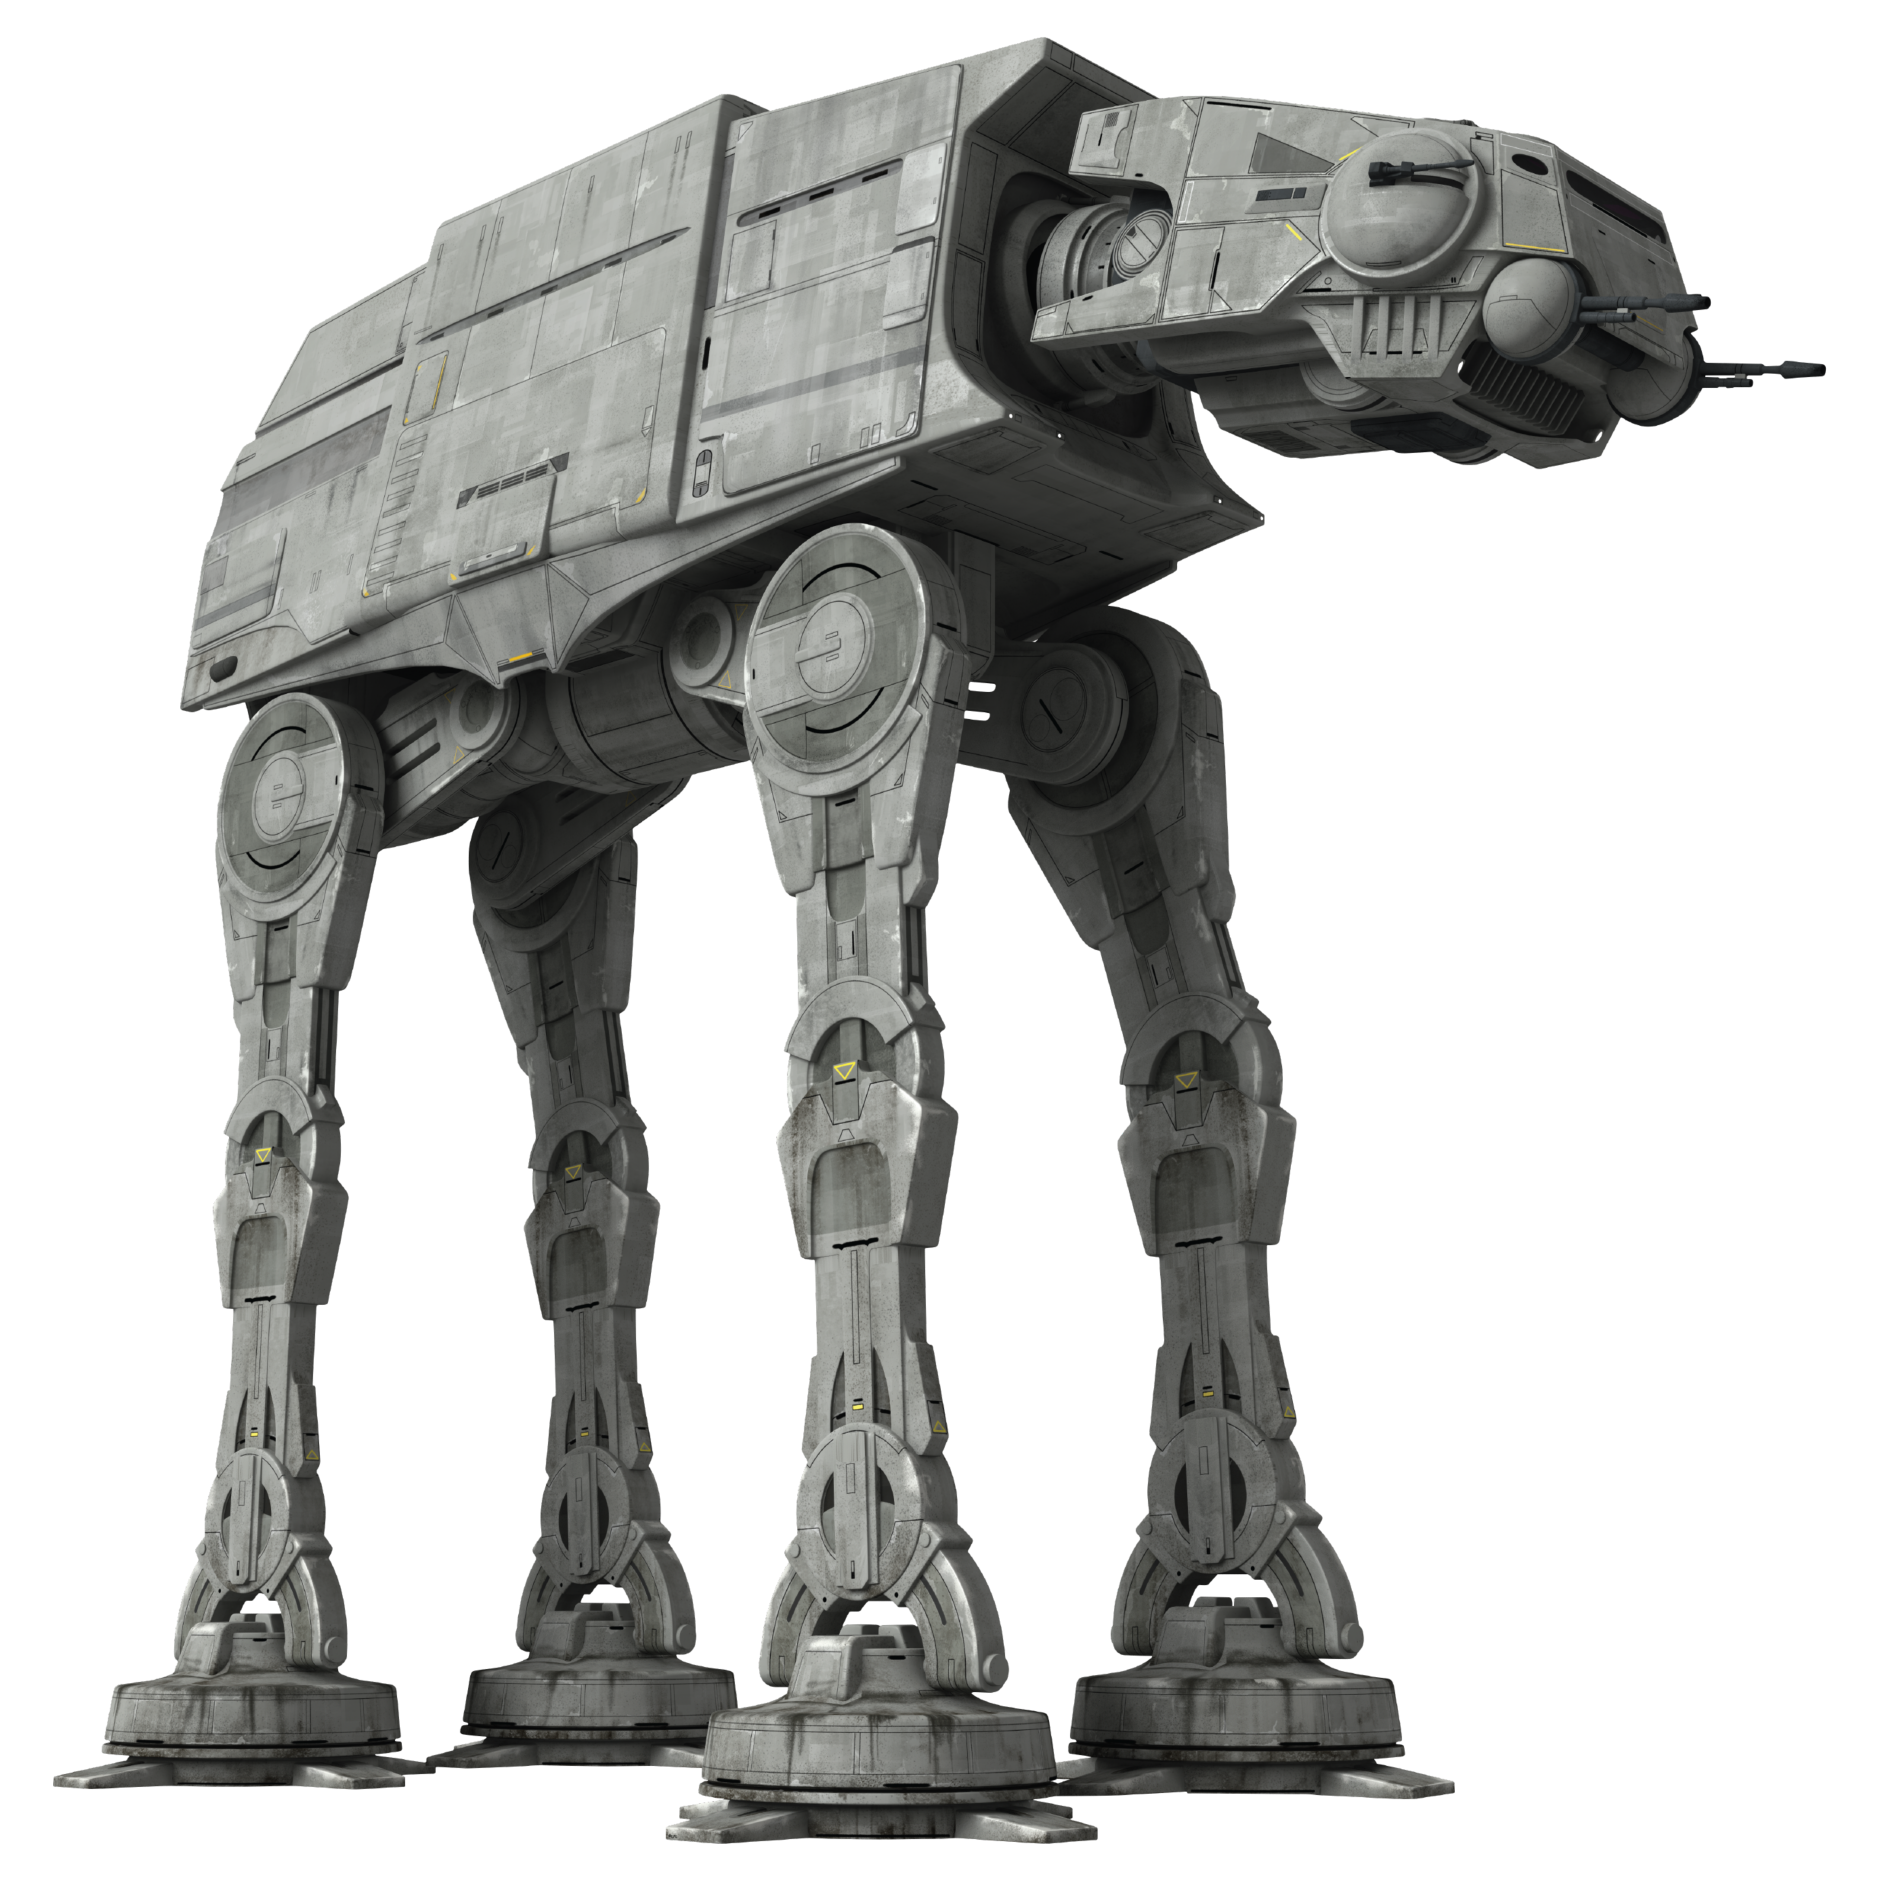 All Terrain Armored Transport (early rebellion against the Empire)